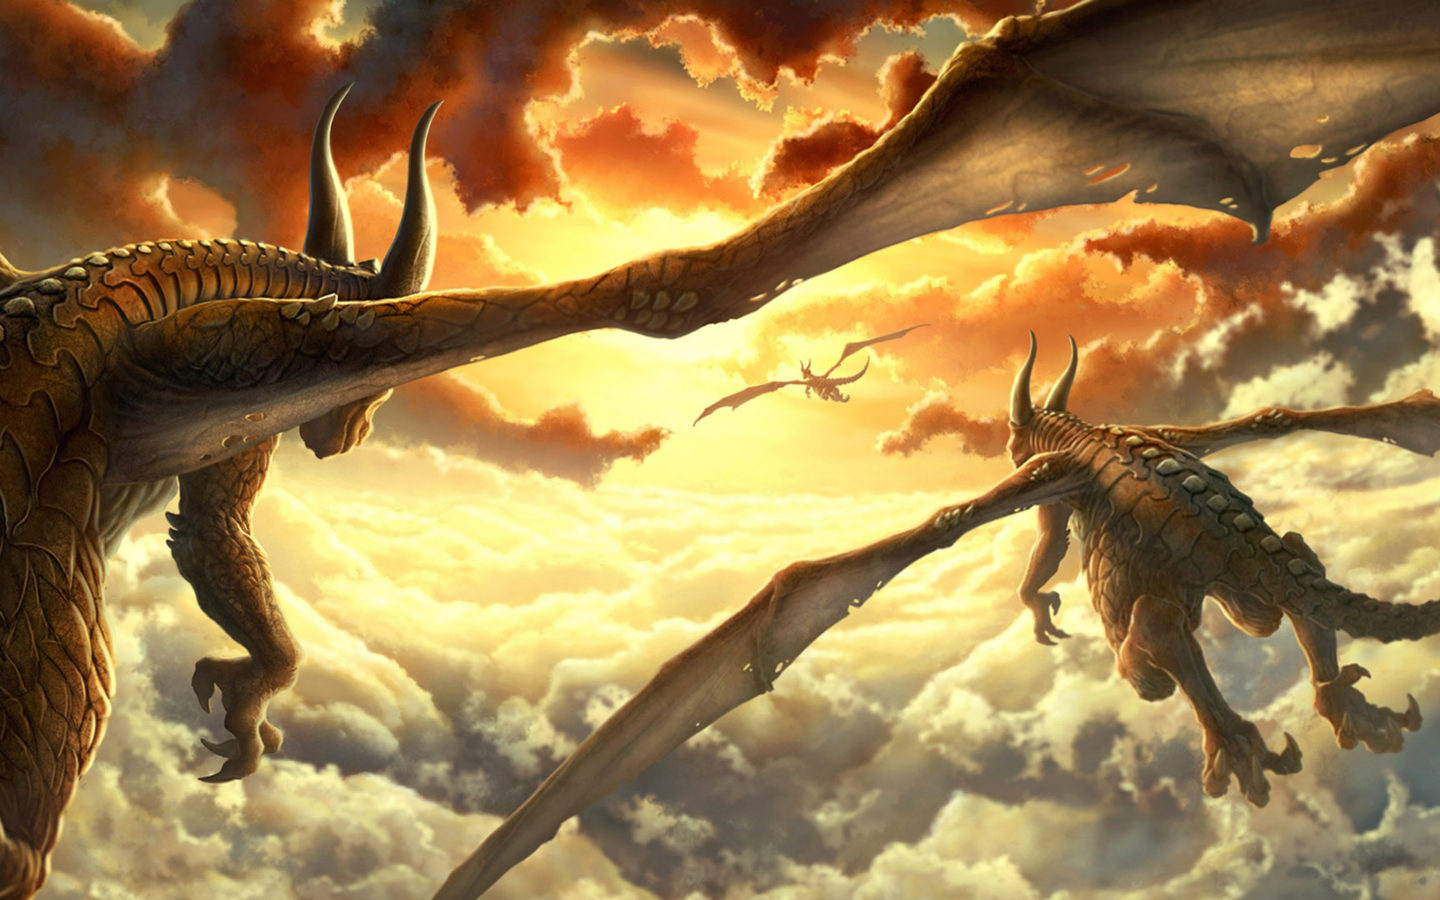 Epic Fantasy Girl Wallpaper Dragons Clouds Drawing 1920x1080 Wallpapers13 Com